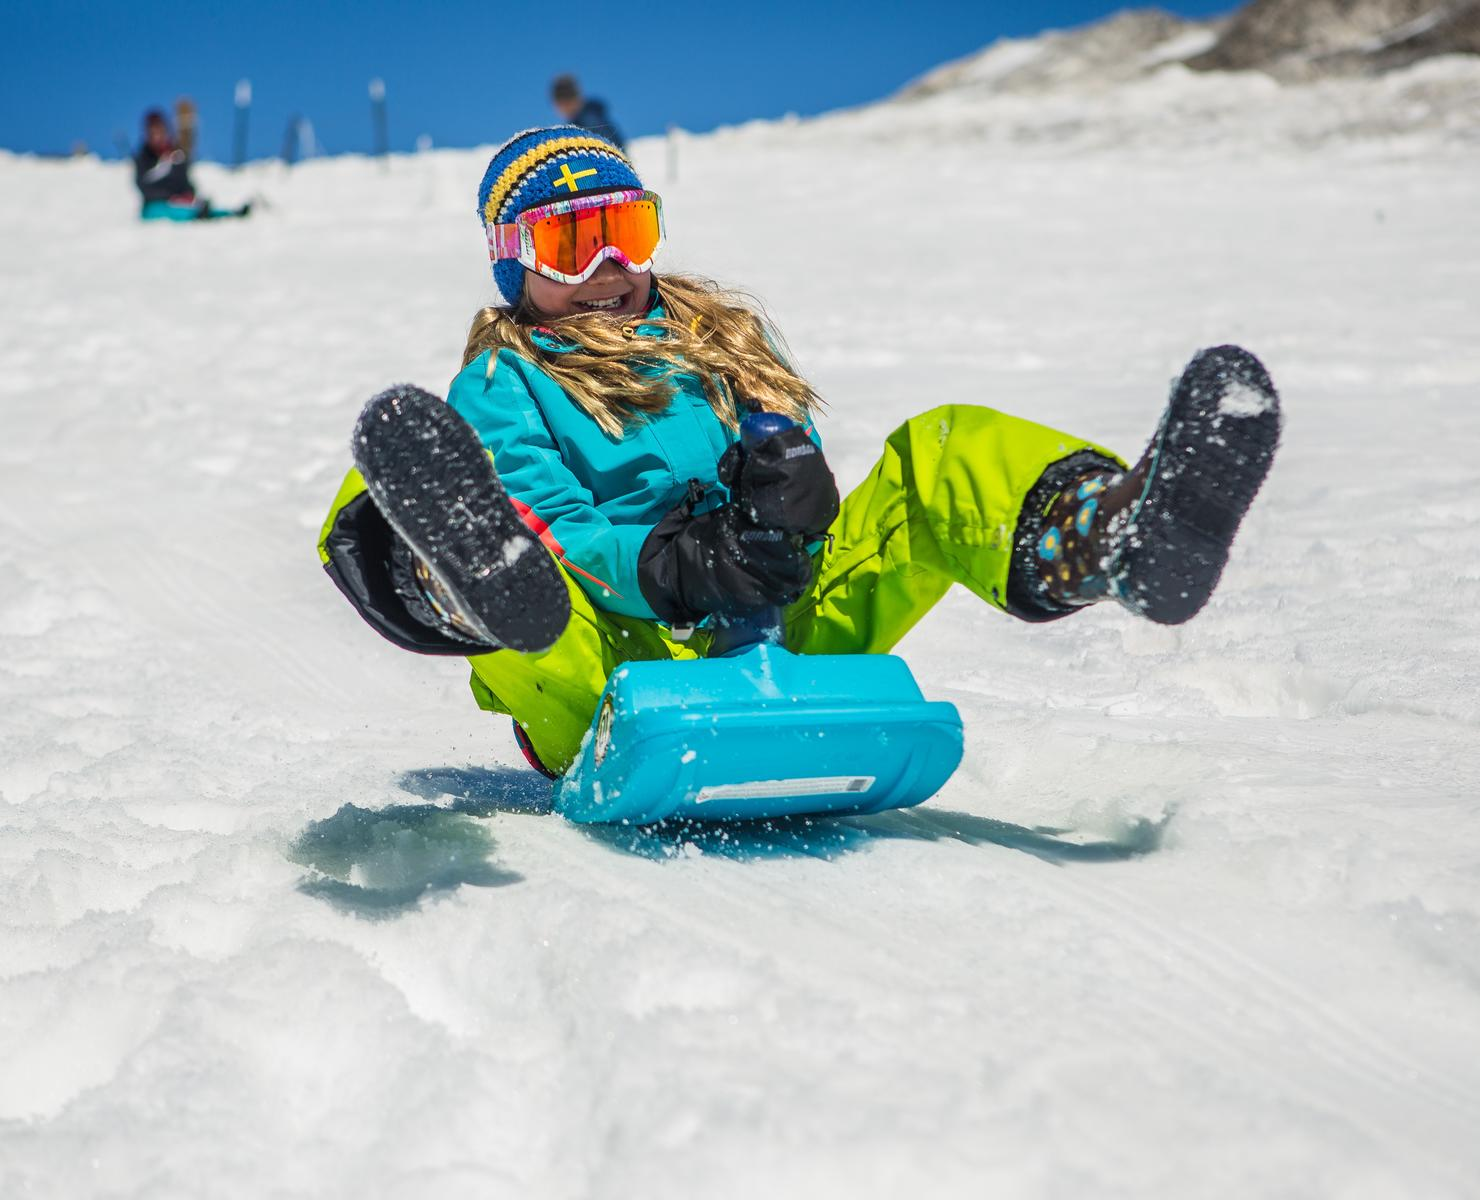 Winter Activities Up Your Sledding Game